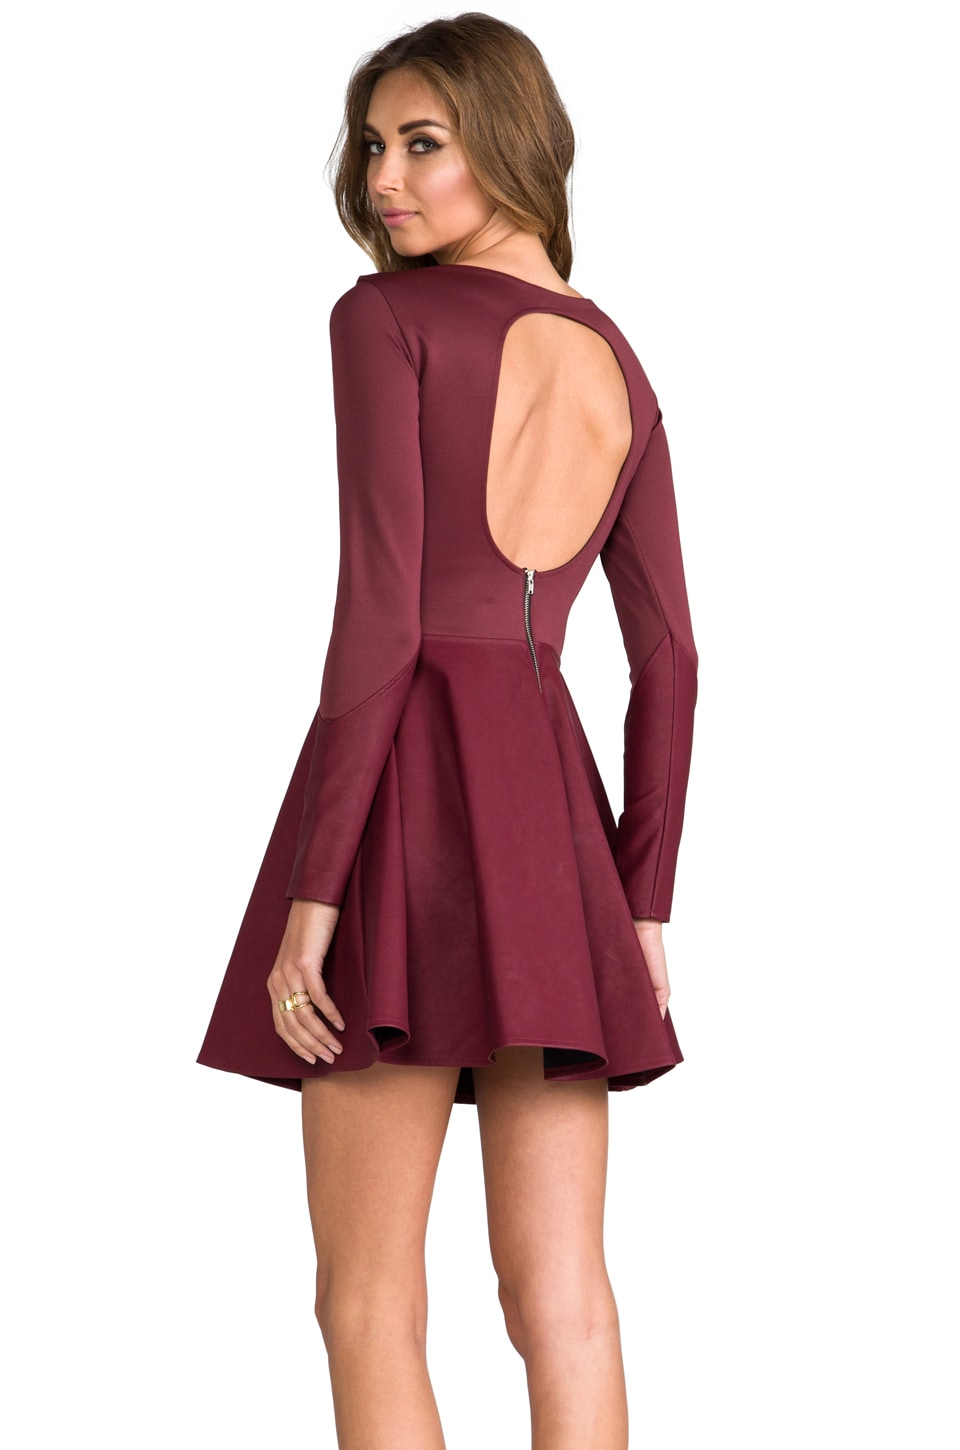 Boulee Avery Dress in Oxblood